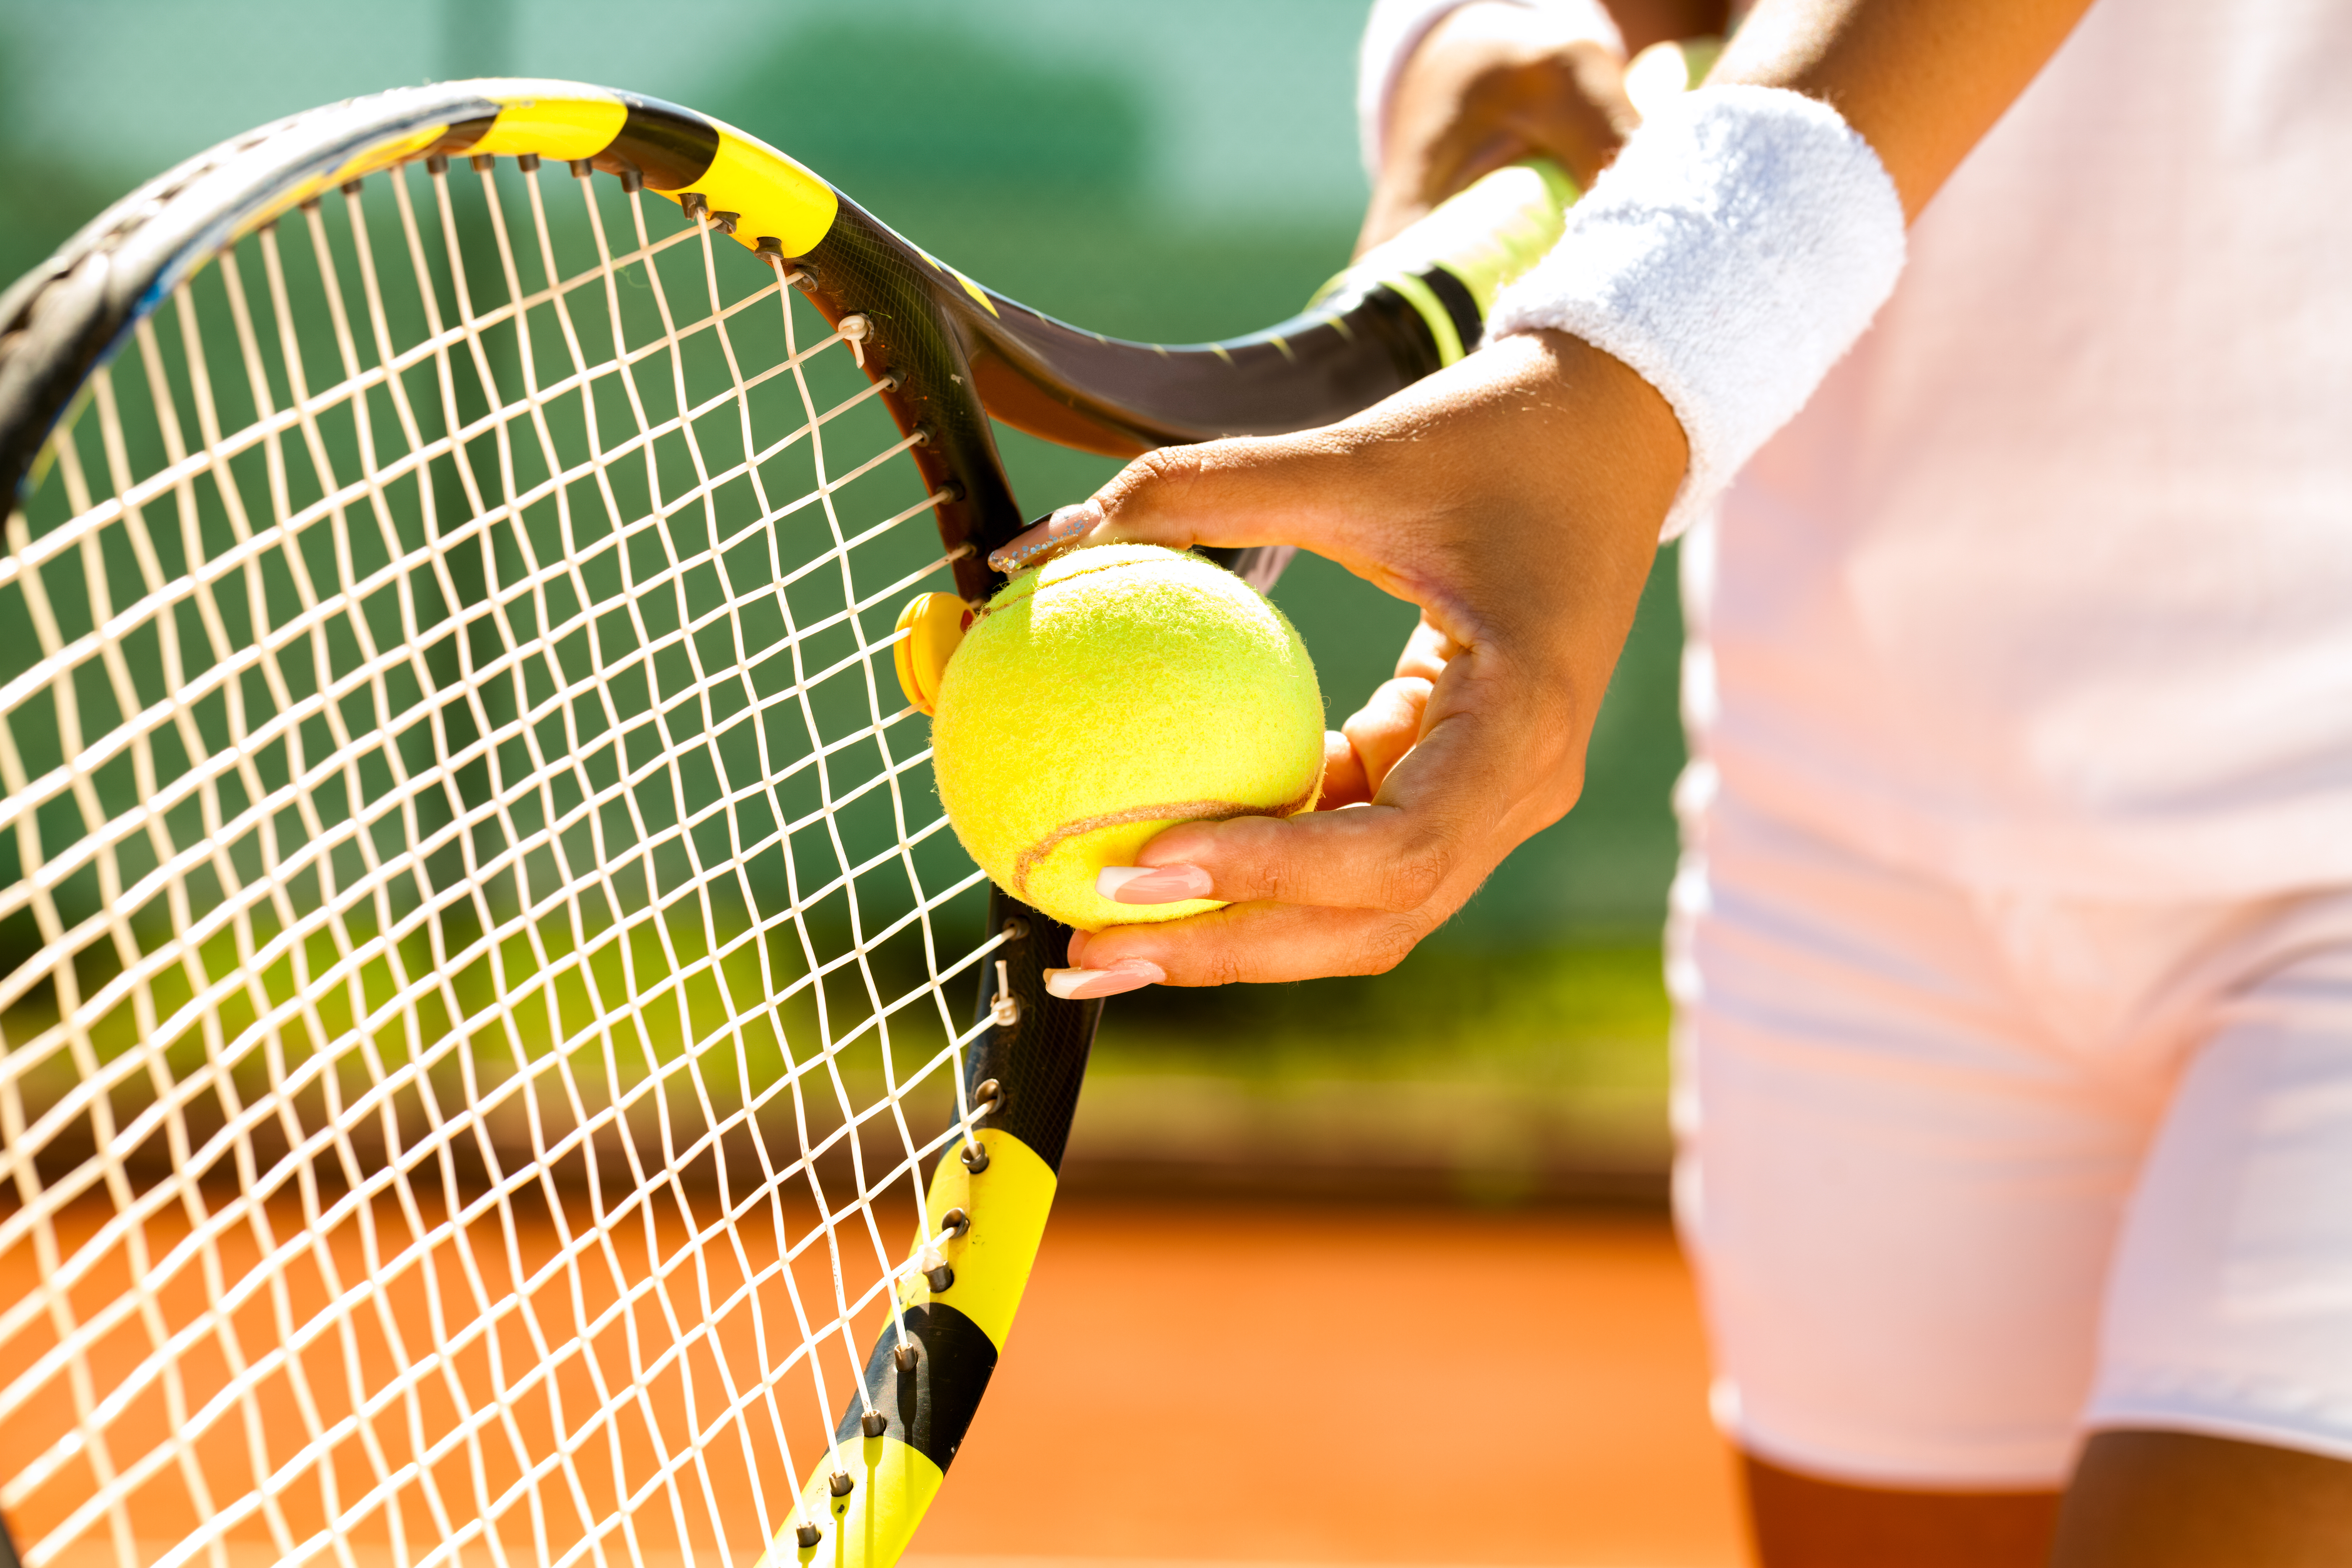 The Midwest Youth Team Tennis class will start March 1 and run Wednesdays through April 5.